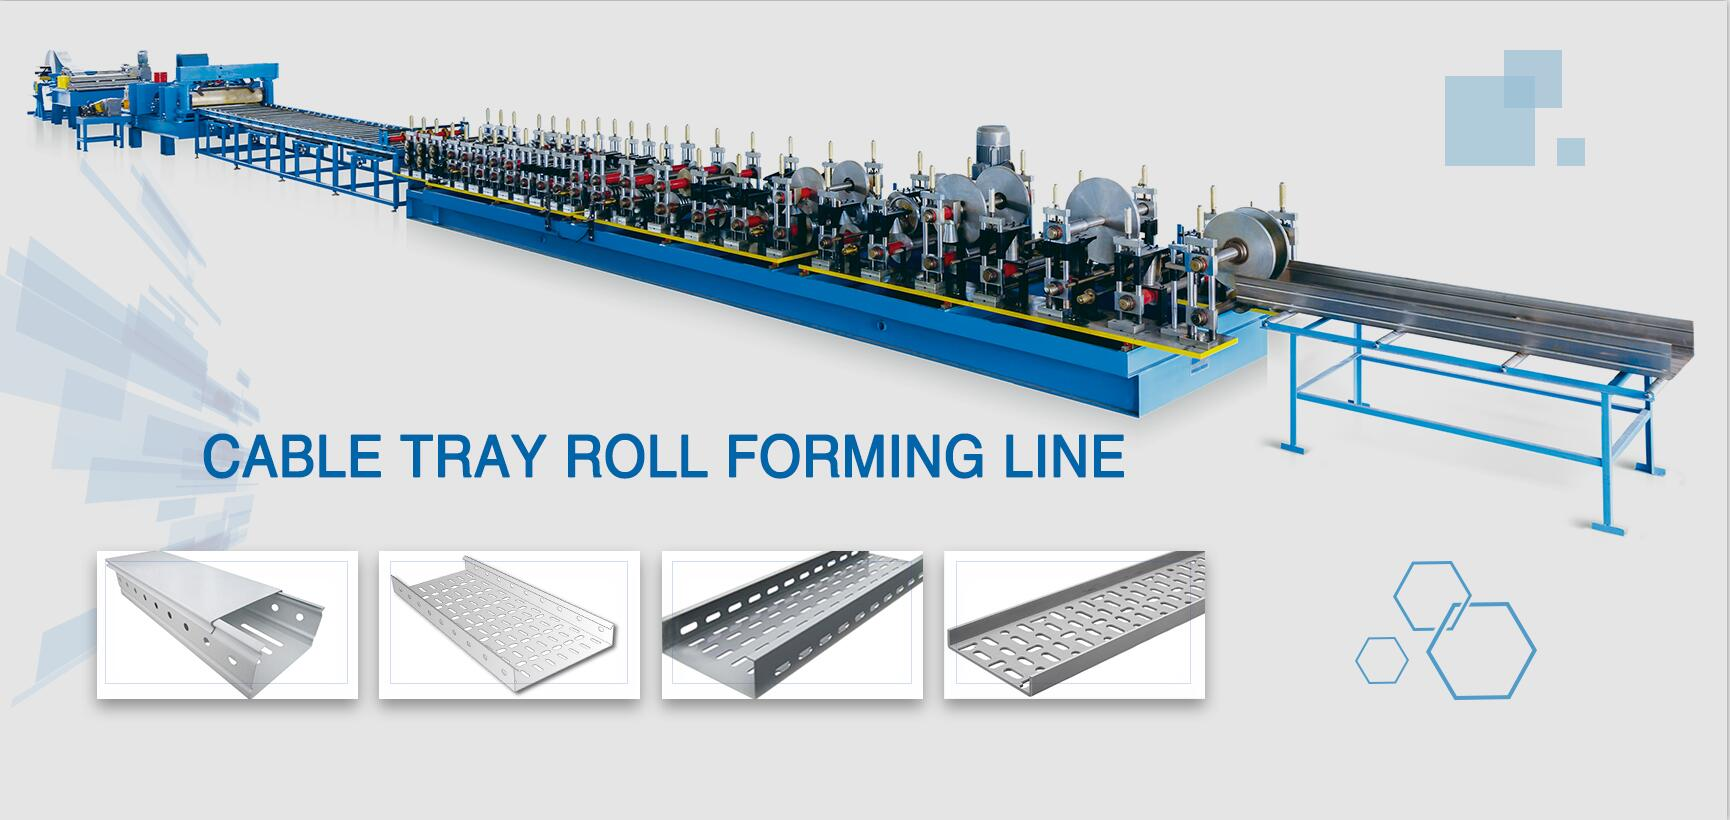 CABLE TRAY ROLL pagbabalangkas makina